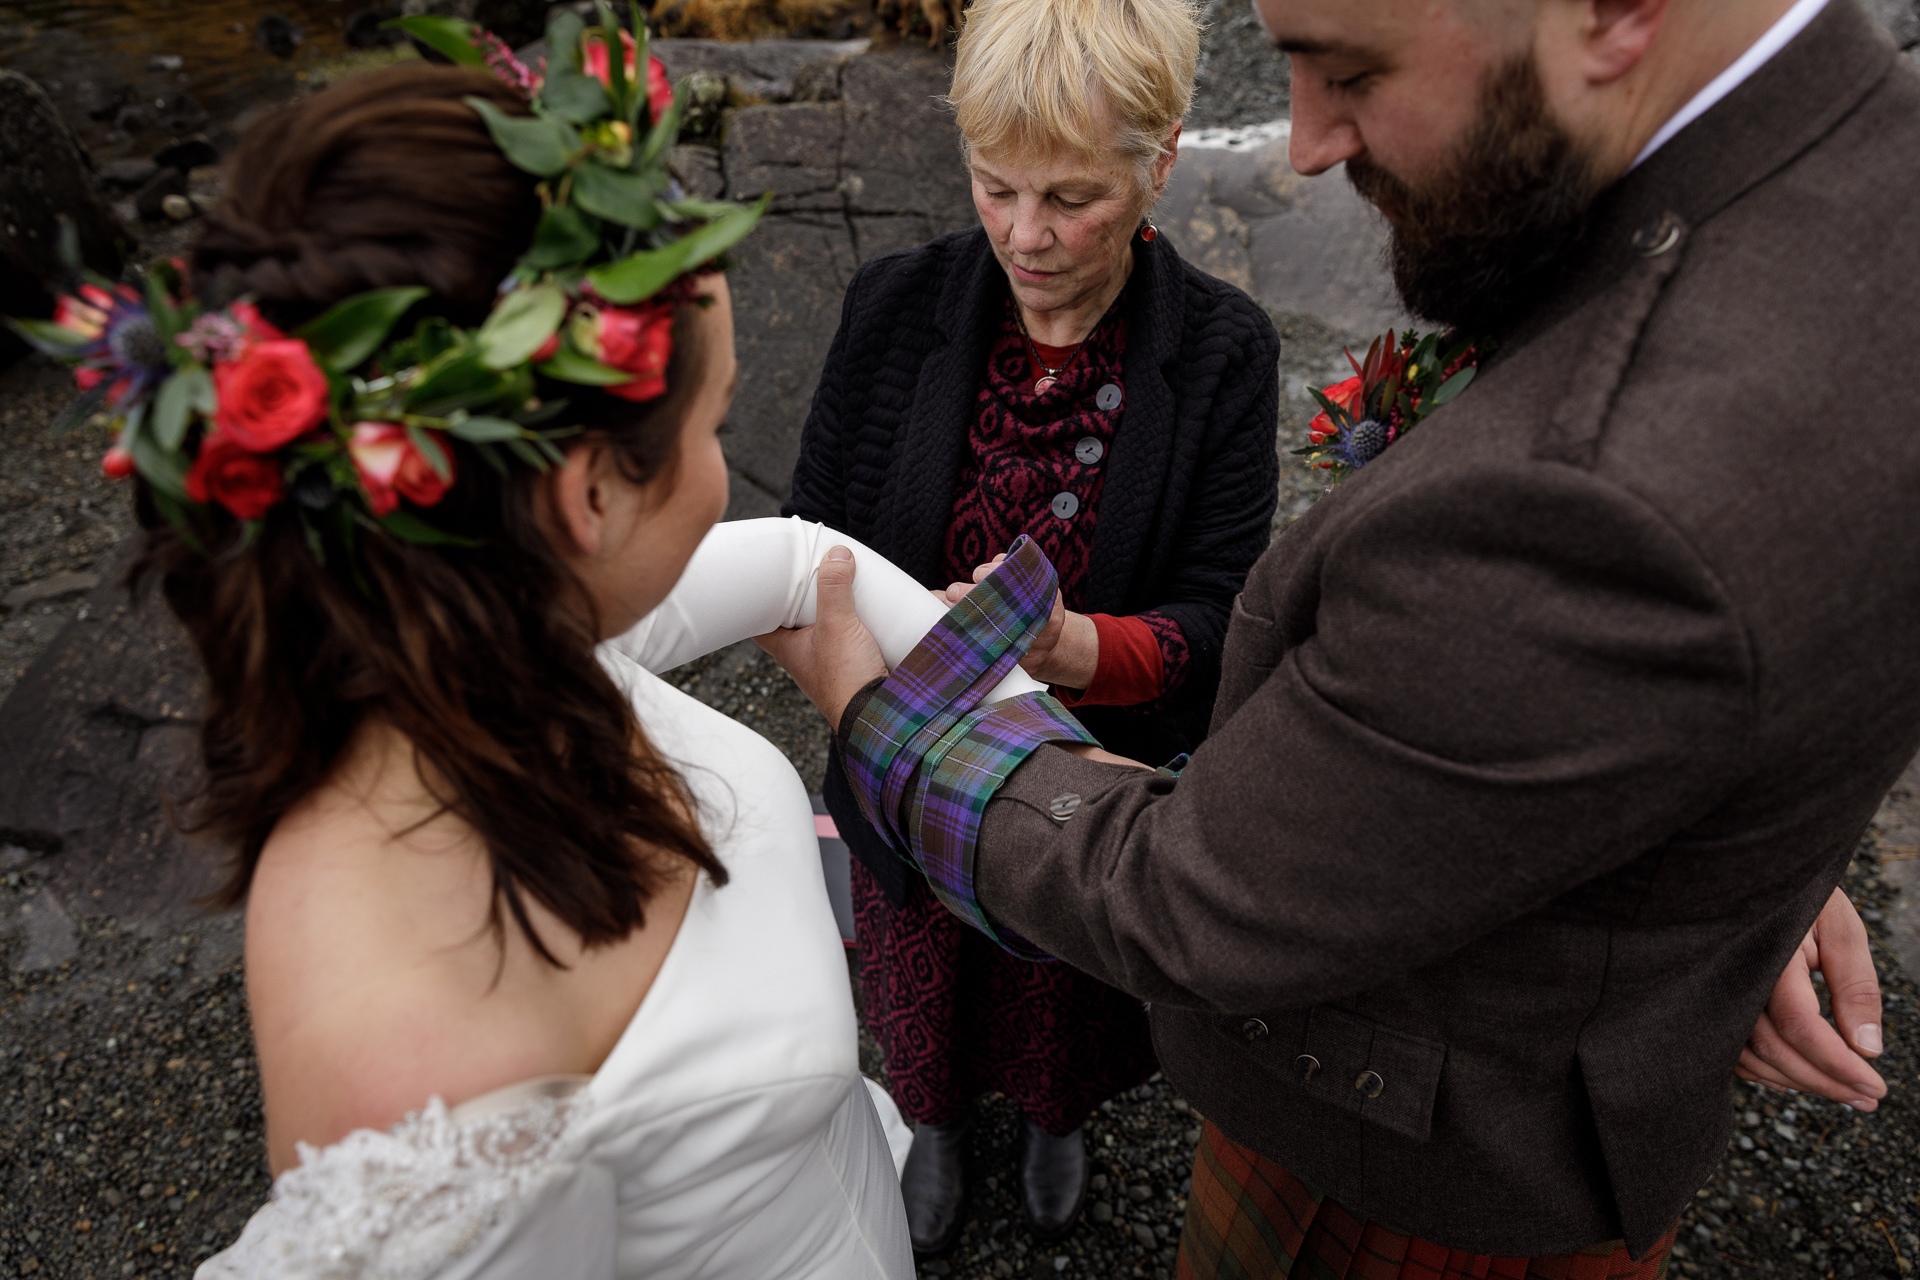 Elopement Ceremony Image from the Isle of Skye, Scotland, UK | As well as making personal vows to each other, the couple had a handfasting, which is a very ancient Celtic ritual